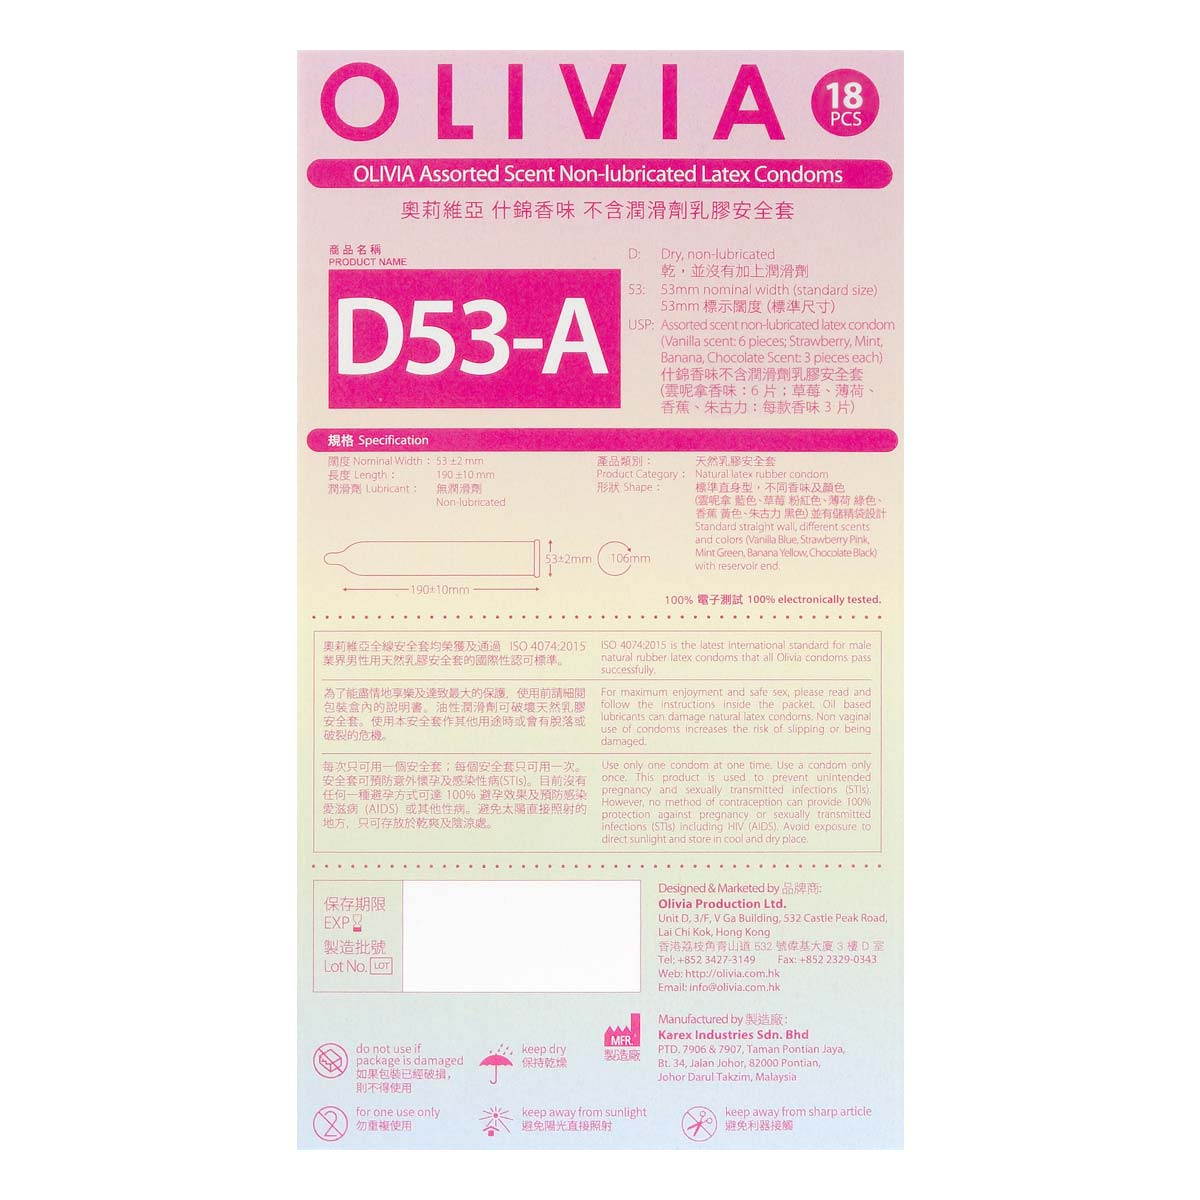 Olivia Assorted Scent Oral Condom 18's Pack Latex Condom